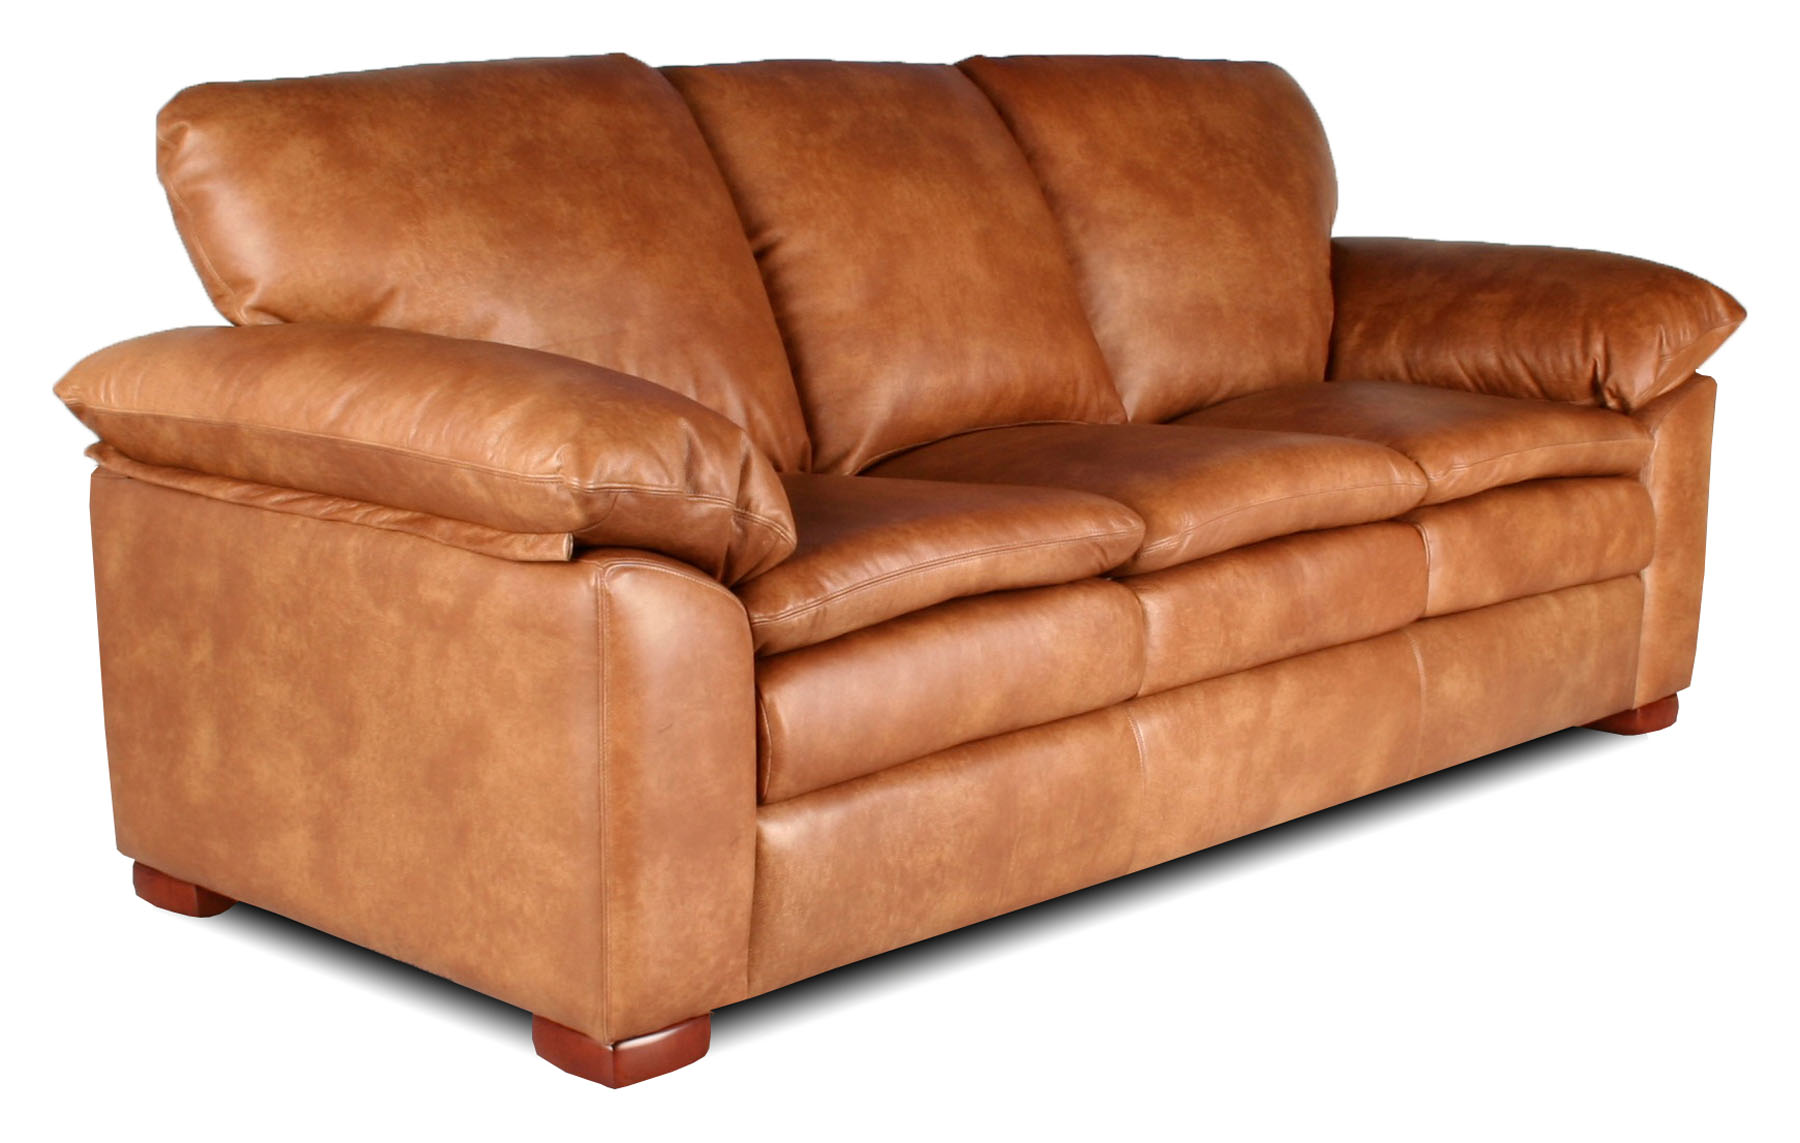 Corinth leather furniture for Furniture leather sofa